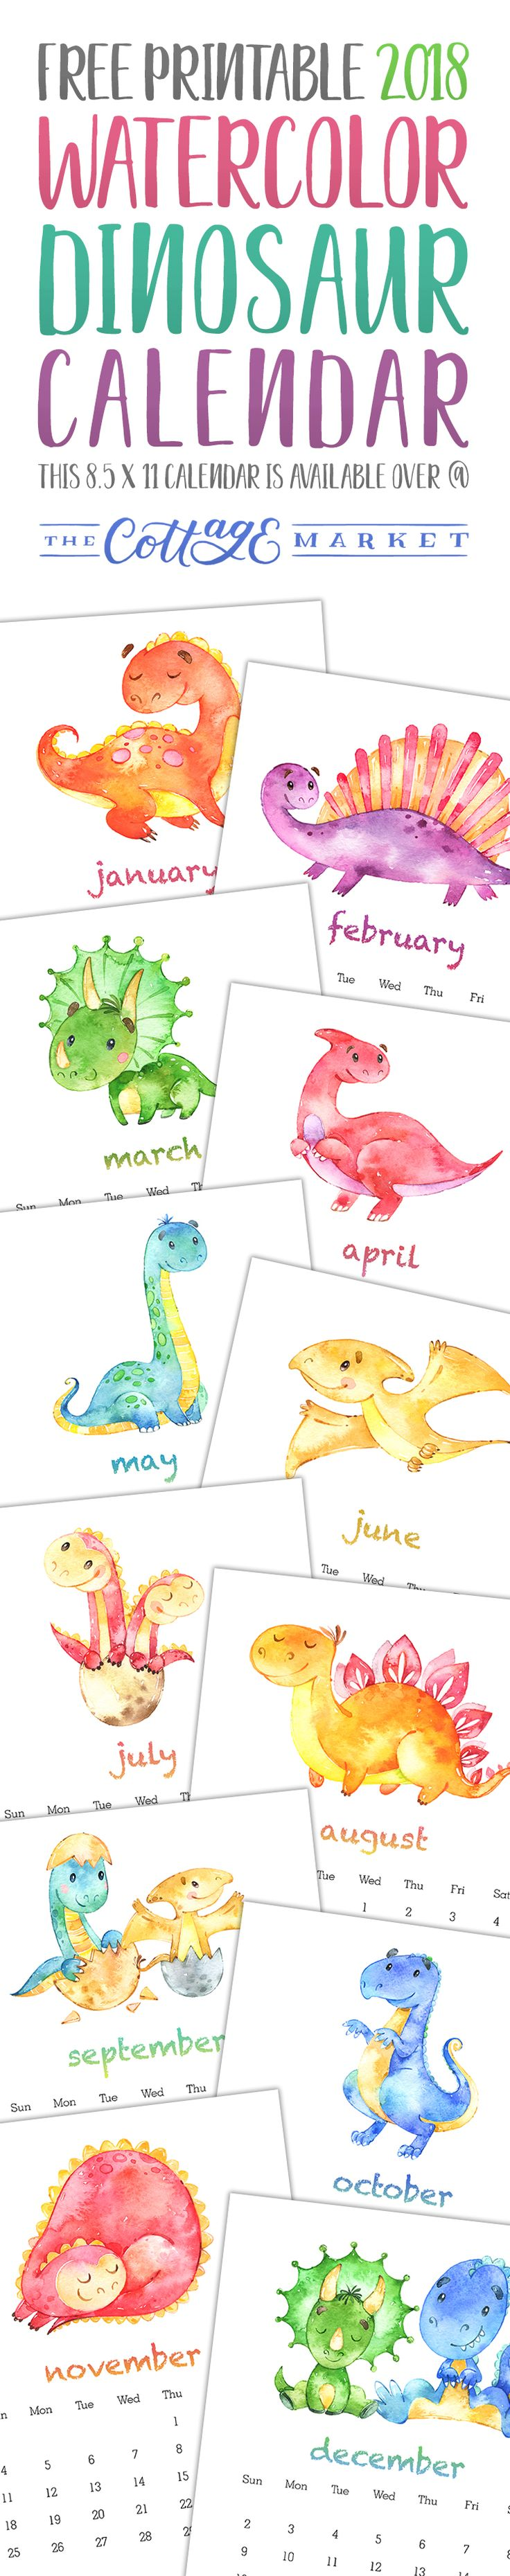 You have to check out this Free printable 2018 Watercolor Dinosaur Calendar. This Free Printable 2018 Calendar is filled with Prehistoric Fun For Everyone!